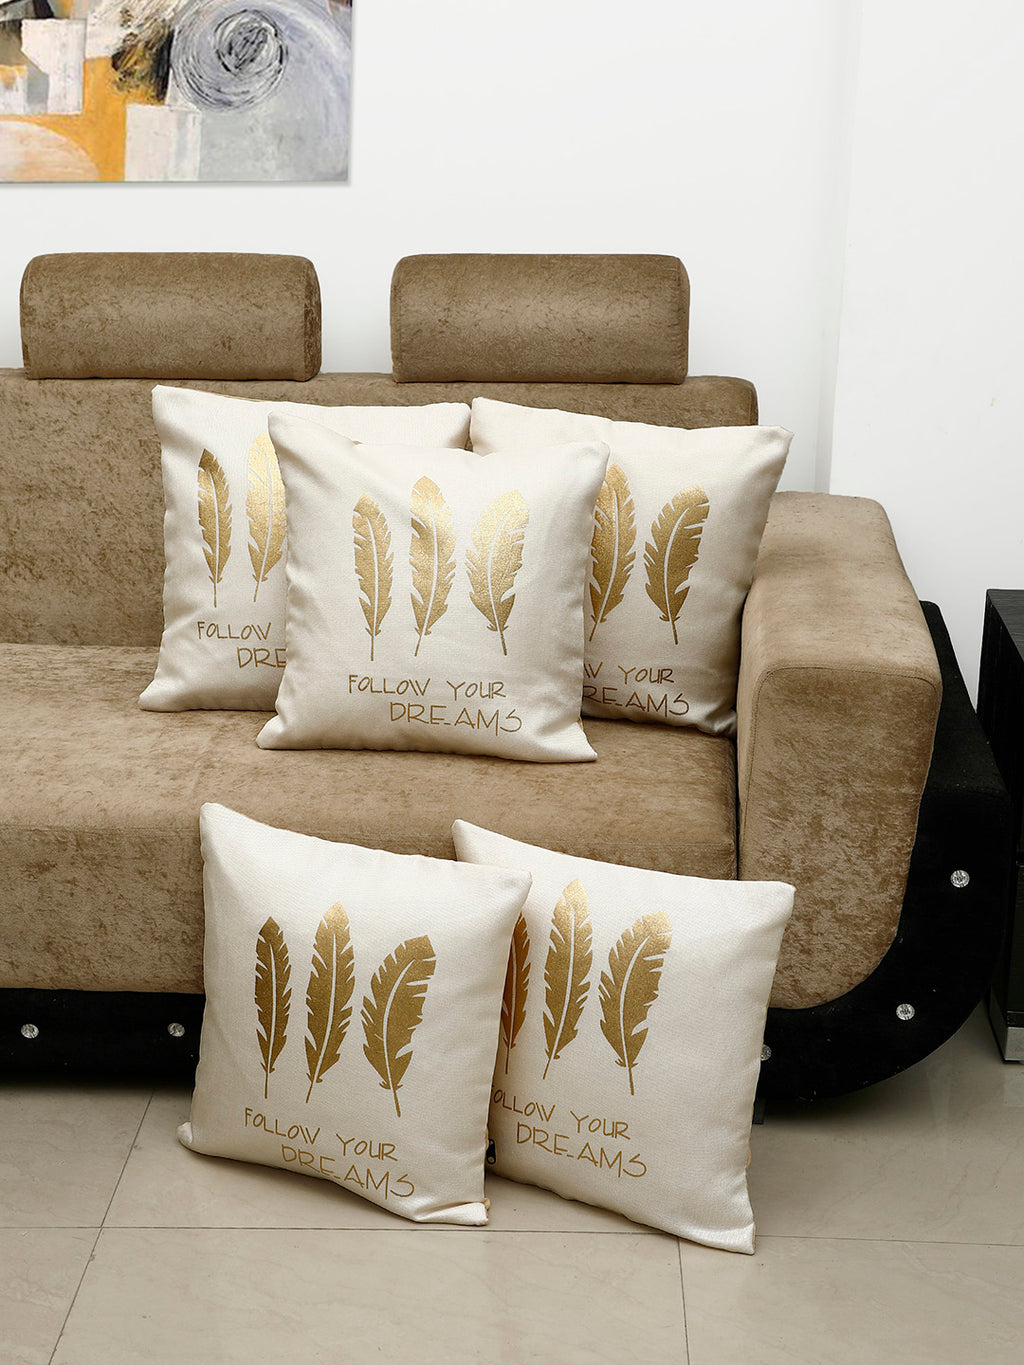 Detec™ Hosta Beige Golden Feather Printed 16 x 16 inches Cushion Cover (Set of 5 )